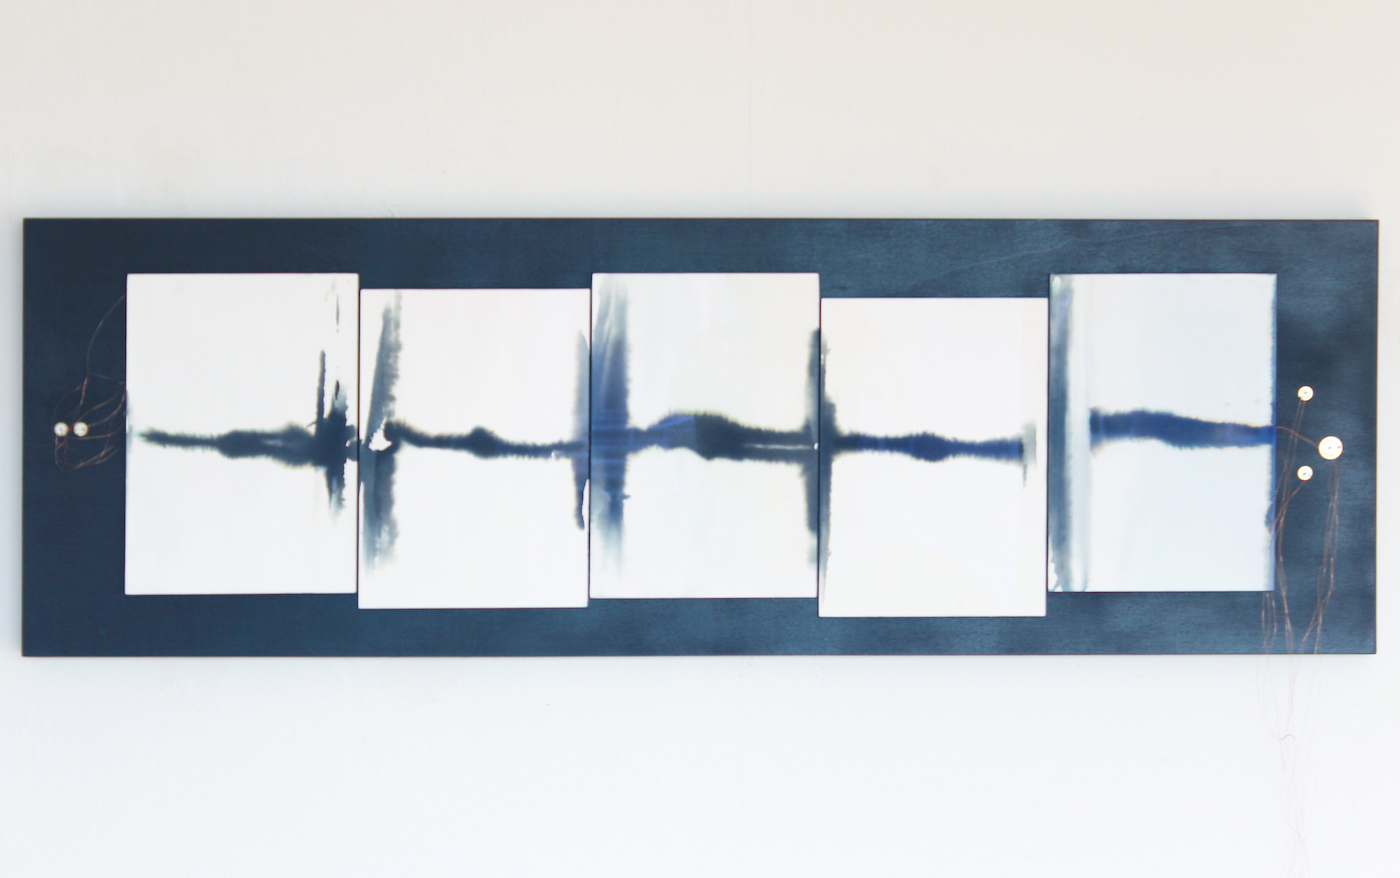 Juliana Herrero, a white noise, the grilles and the sea, 2016 (125 cm x 40 cm x 5 cm) Wall object with sound; non washed blue prints as synesthesia, museum glass, anthracite board, copper wire, piezo's, electronic heart, sound on playback.